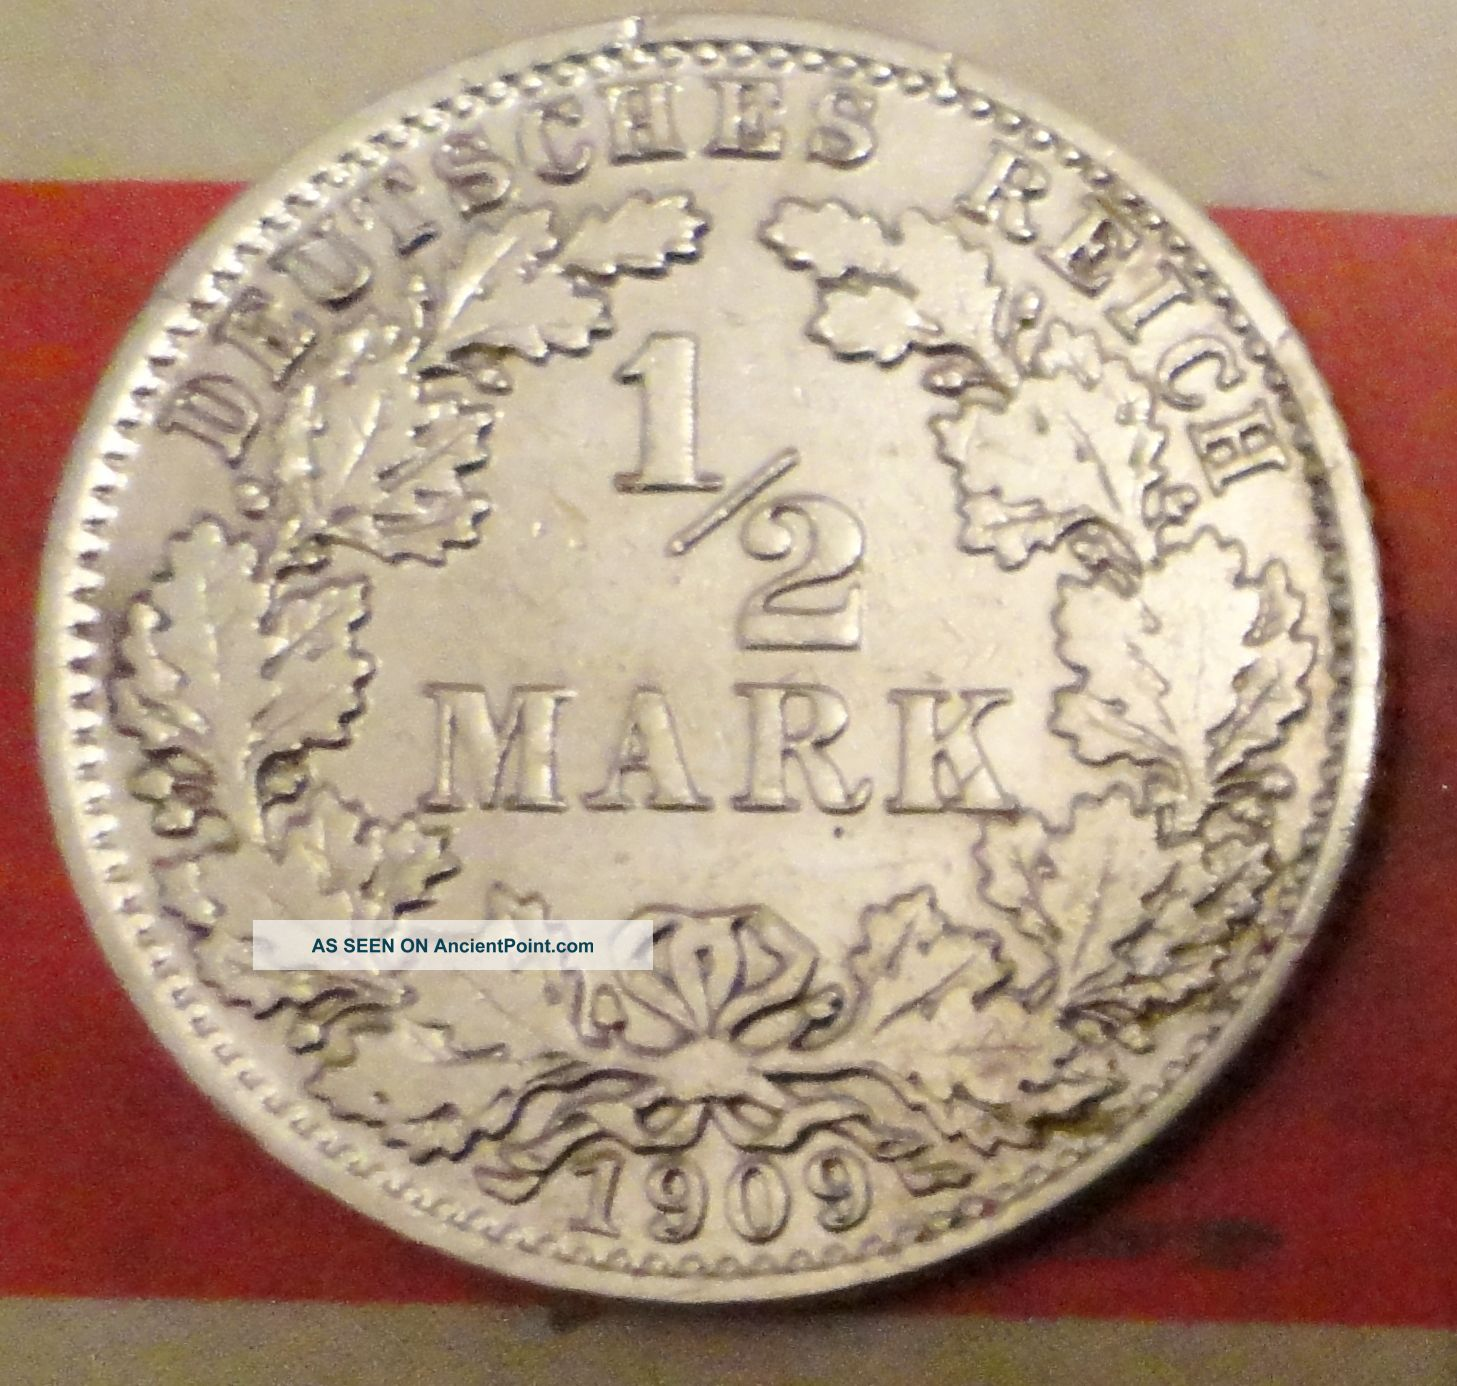 1/2 Mark 1909 A Germany Silver Coin Berlin Mint Coin Silver (.900) photo